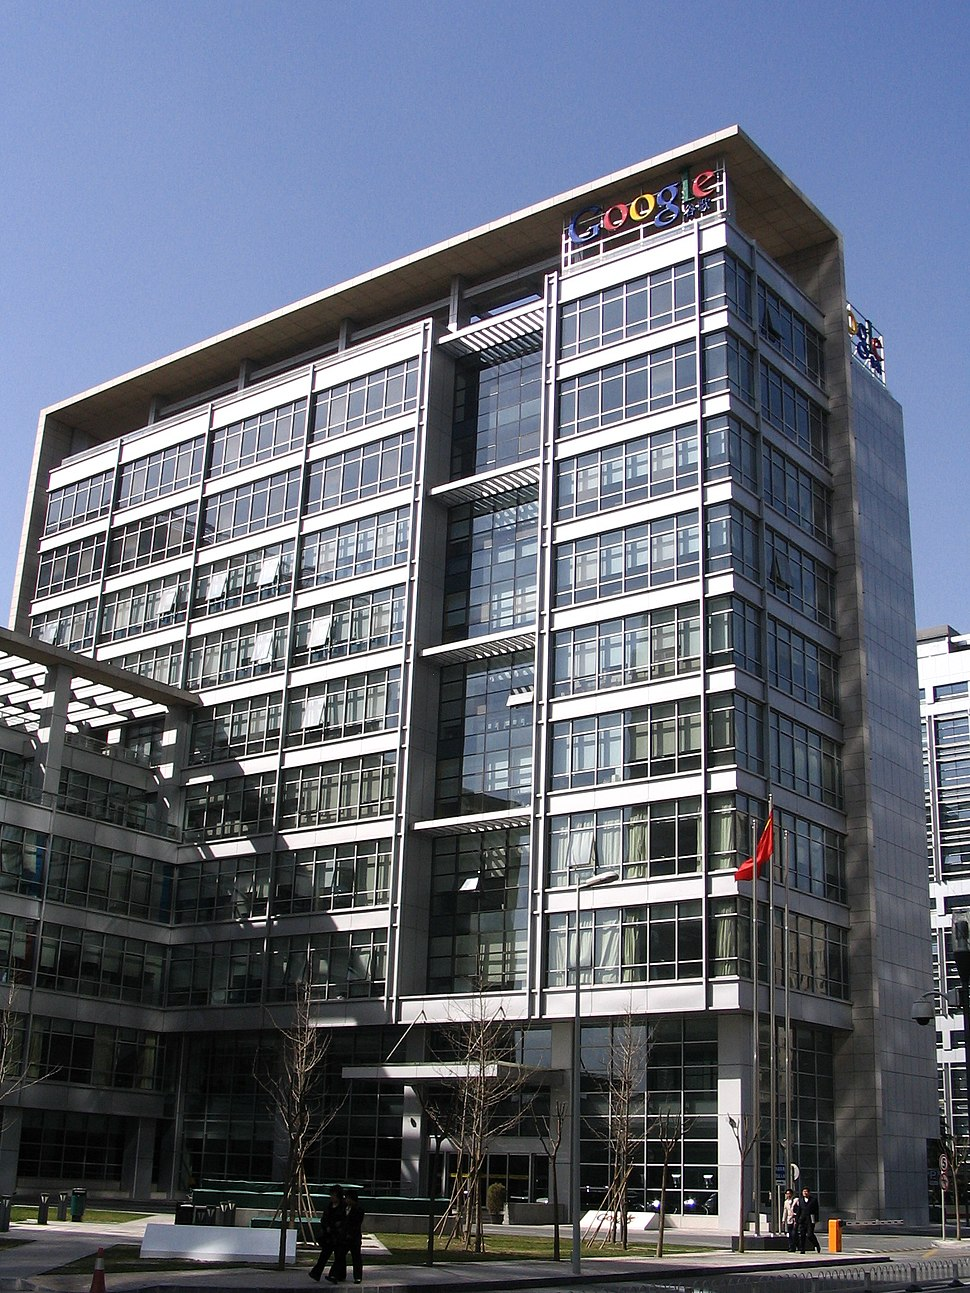 Google China headquarter in Beijing